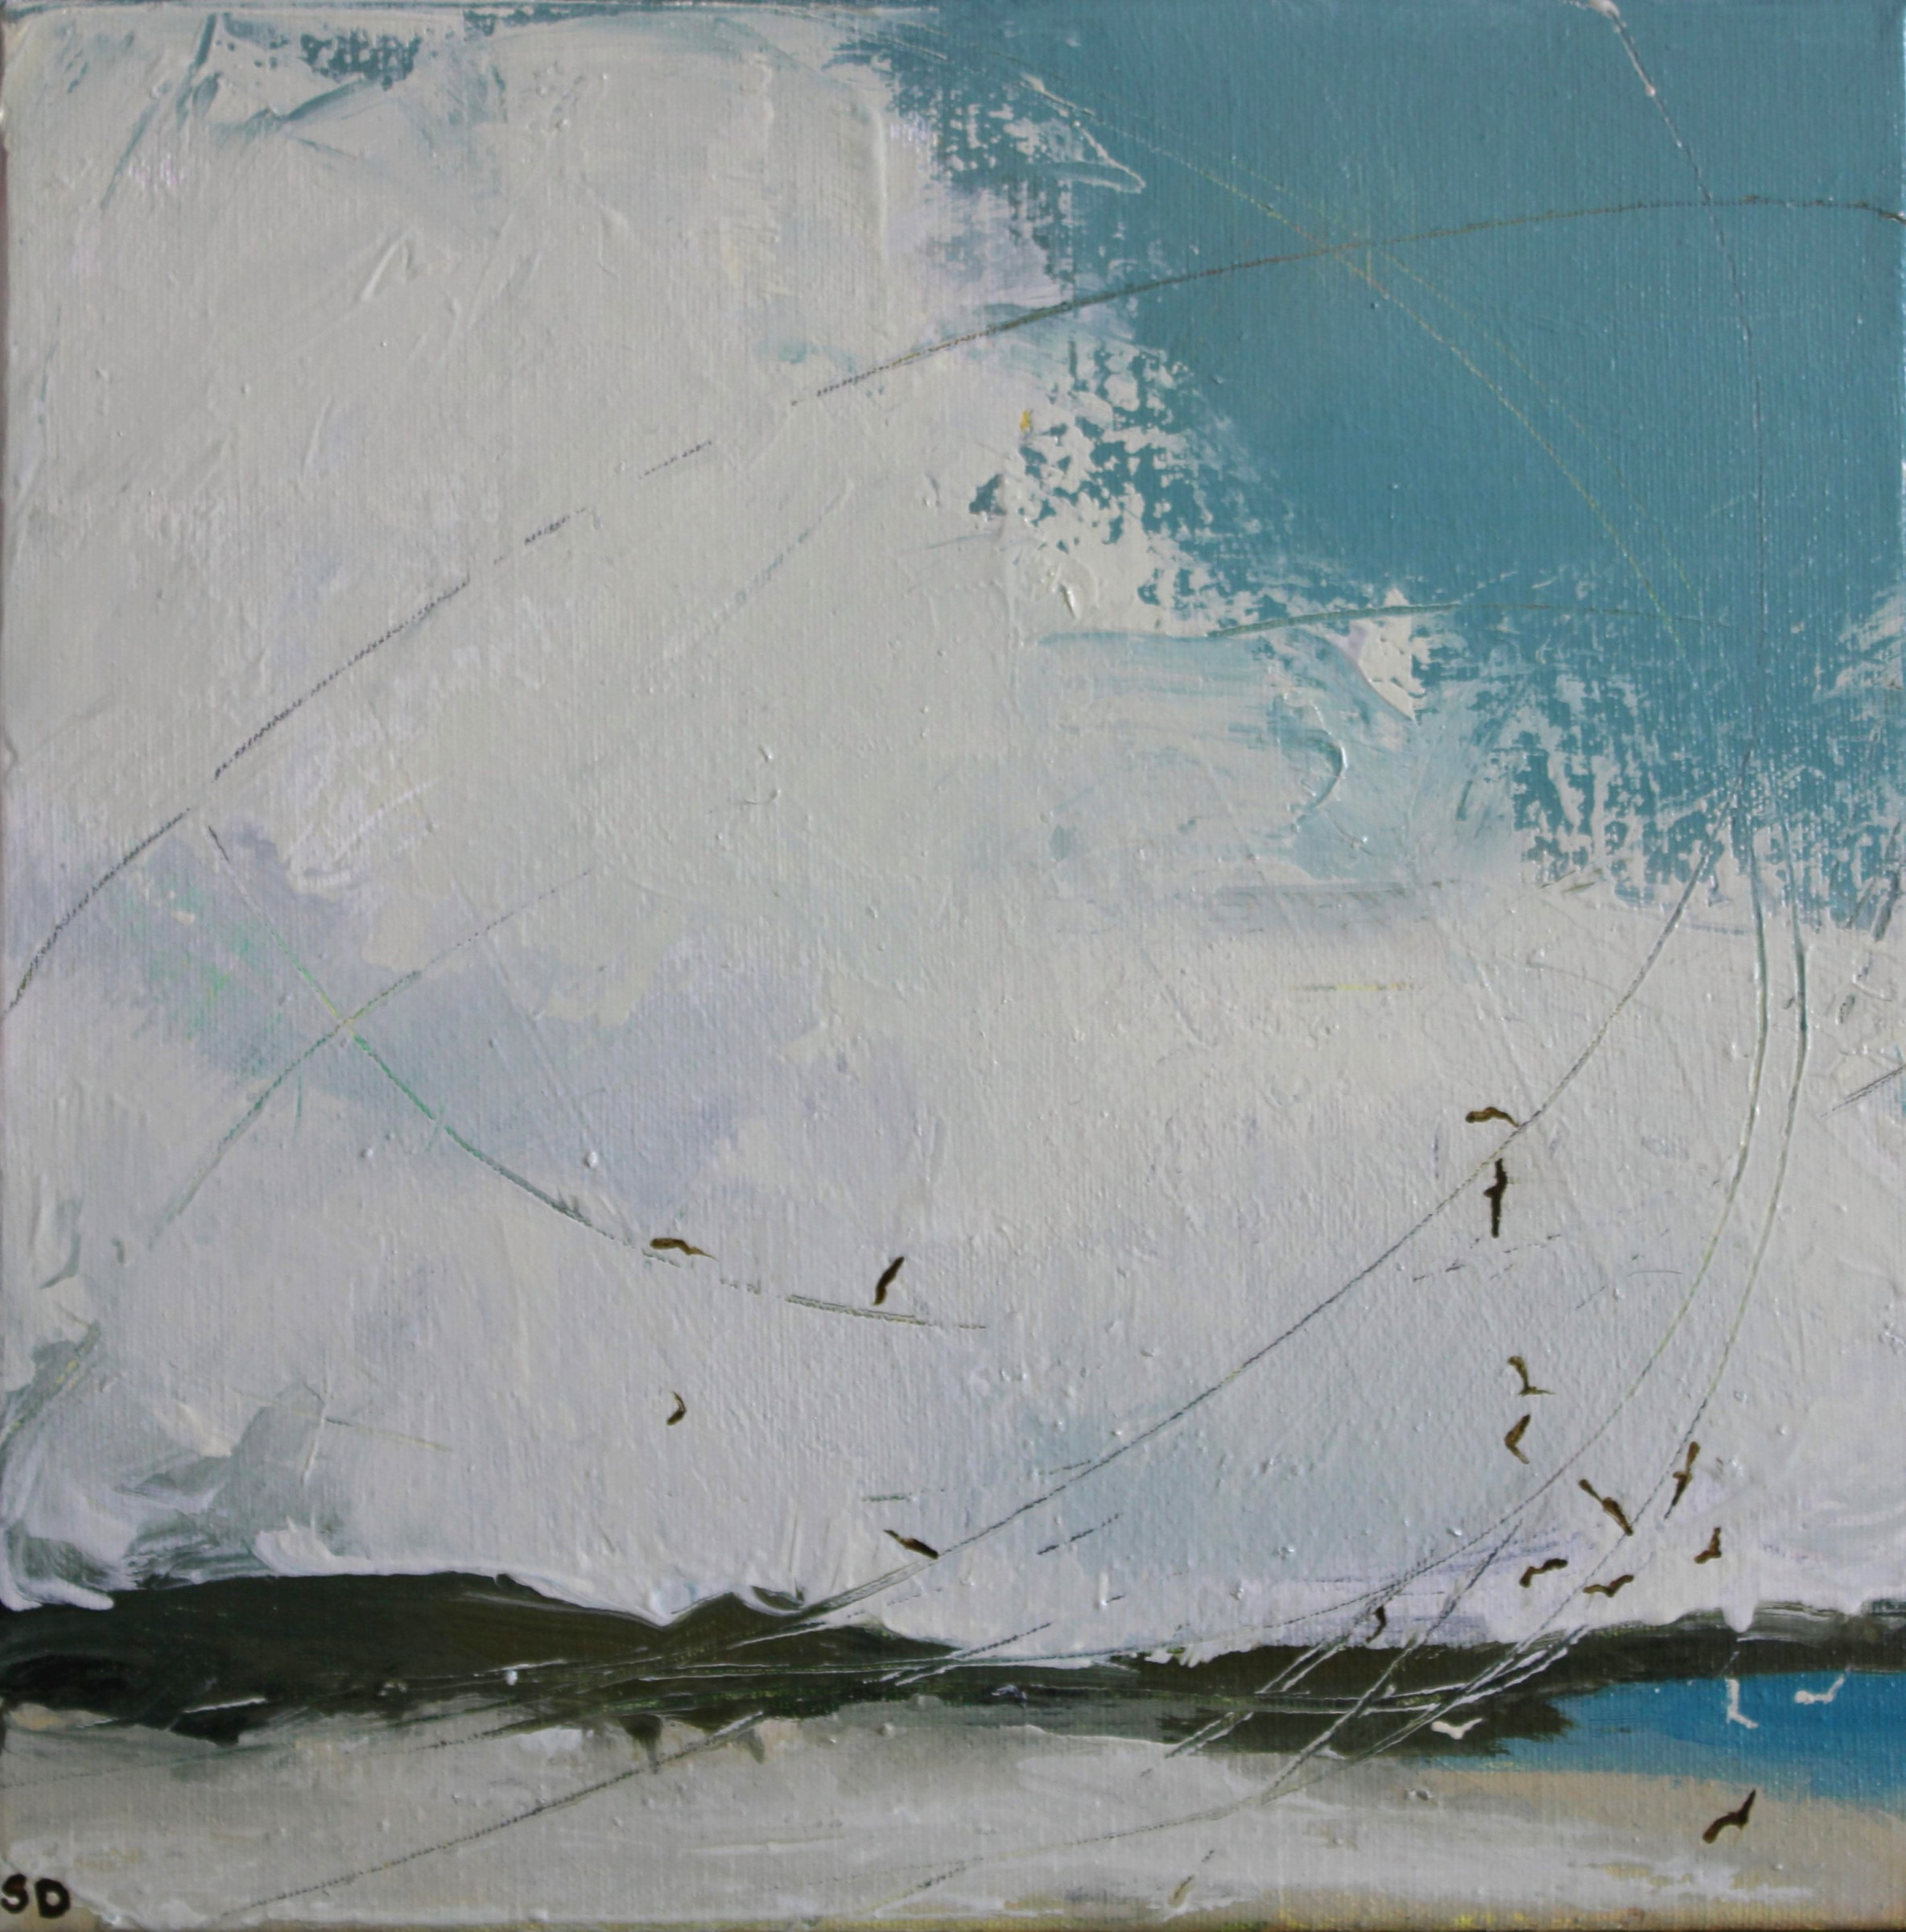 "<span class=""link fancybox-details-link""><a href=""/artists/159-sara-dudman-rwa/works/6508-sara-dudman-rwa-seabirds-great-bay-st-martin-s-study-4-2019/"">View Detail Page</a></span><div class=""artist""><strong>Sara Dudman RWA</strong></div> <div class=""title""><em>Seabirds (Great Bay St Martin's) Study 4</em>, 2019</div> <div class=""medium"">oil on canvas</div> <div class=""dimensions"">h. 40 x w. 40 cm </div><div class=""copyright_line"">Own Art: £69 x 10 Months, 0% APR</div>"